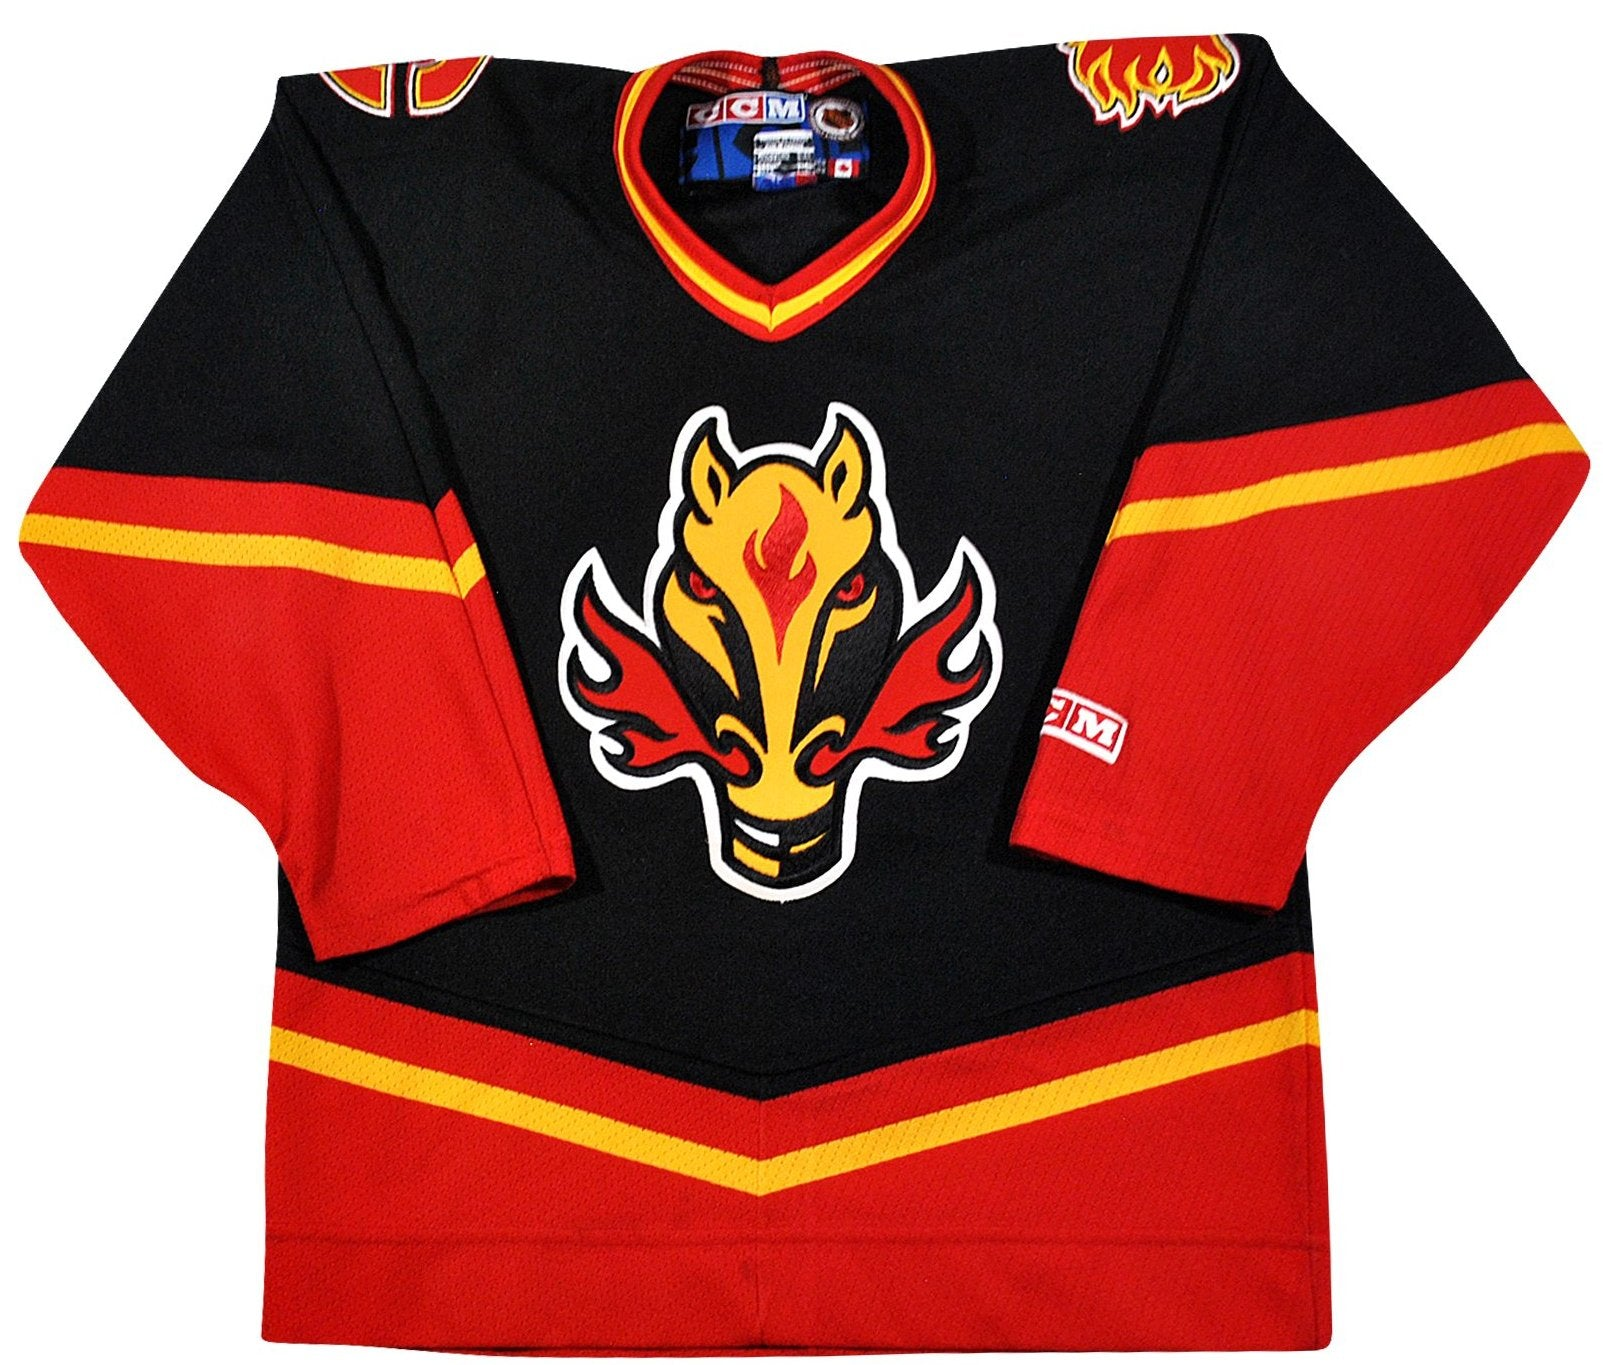 online retailer a7a08 b4ff4 Vintage Calgary Flames Jersey Size Youth Large